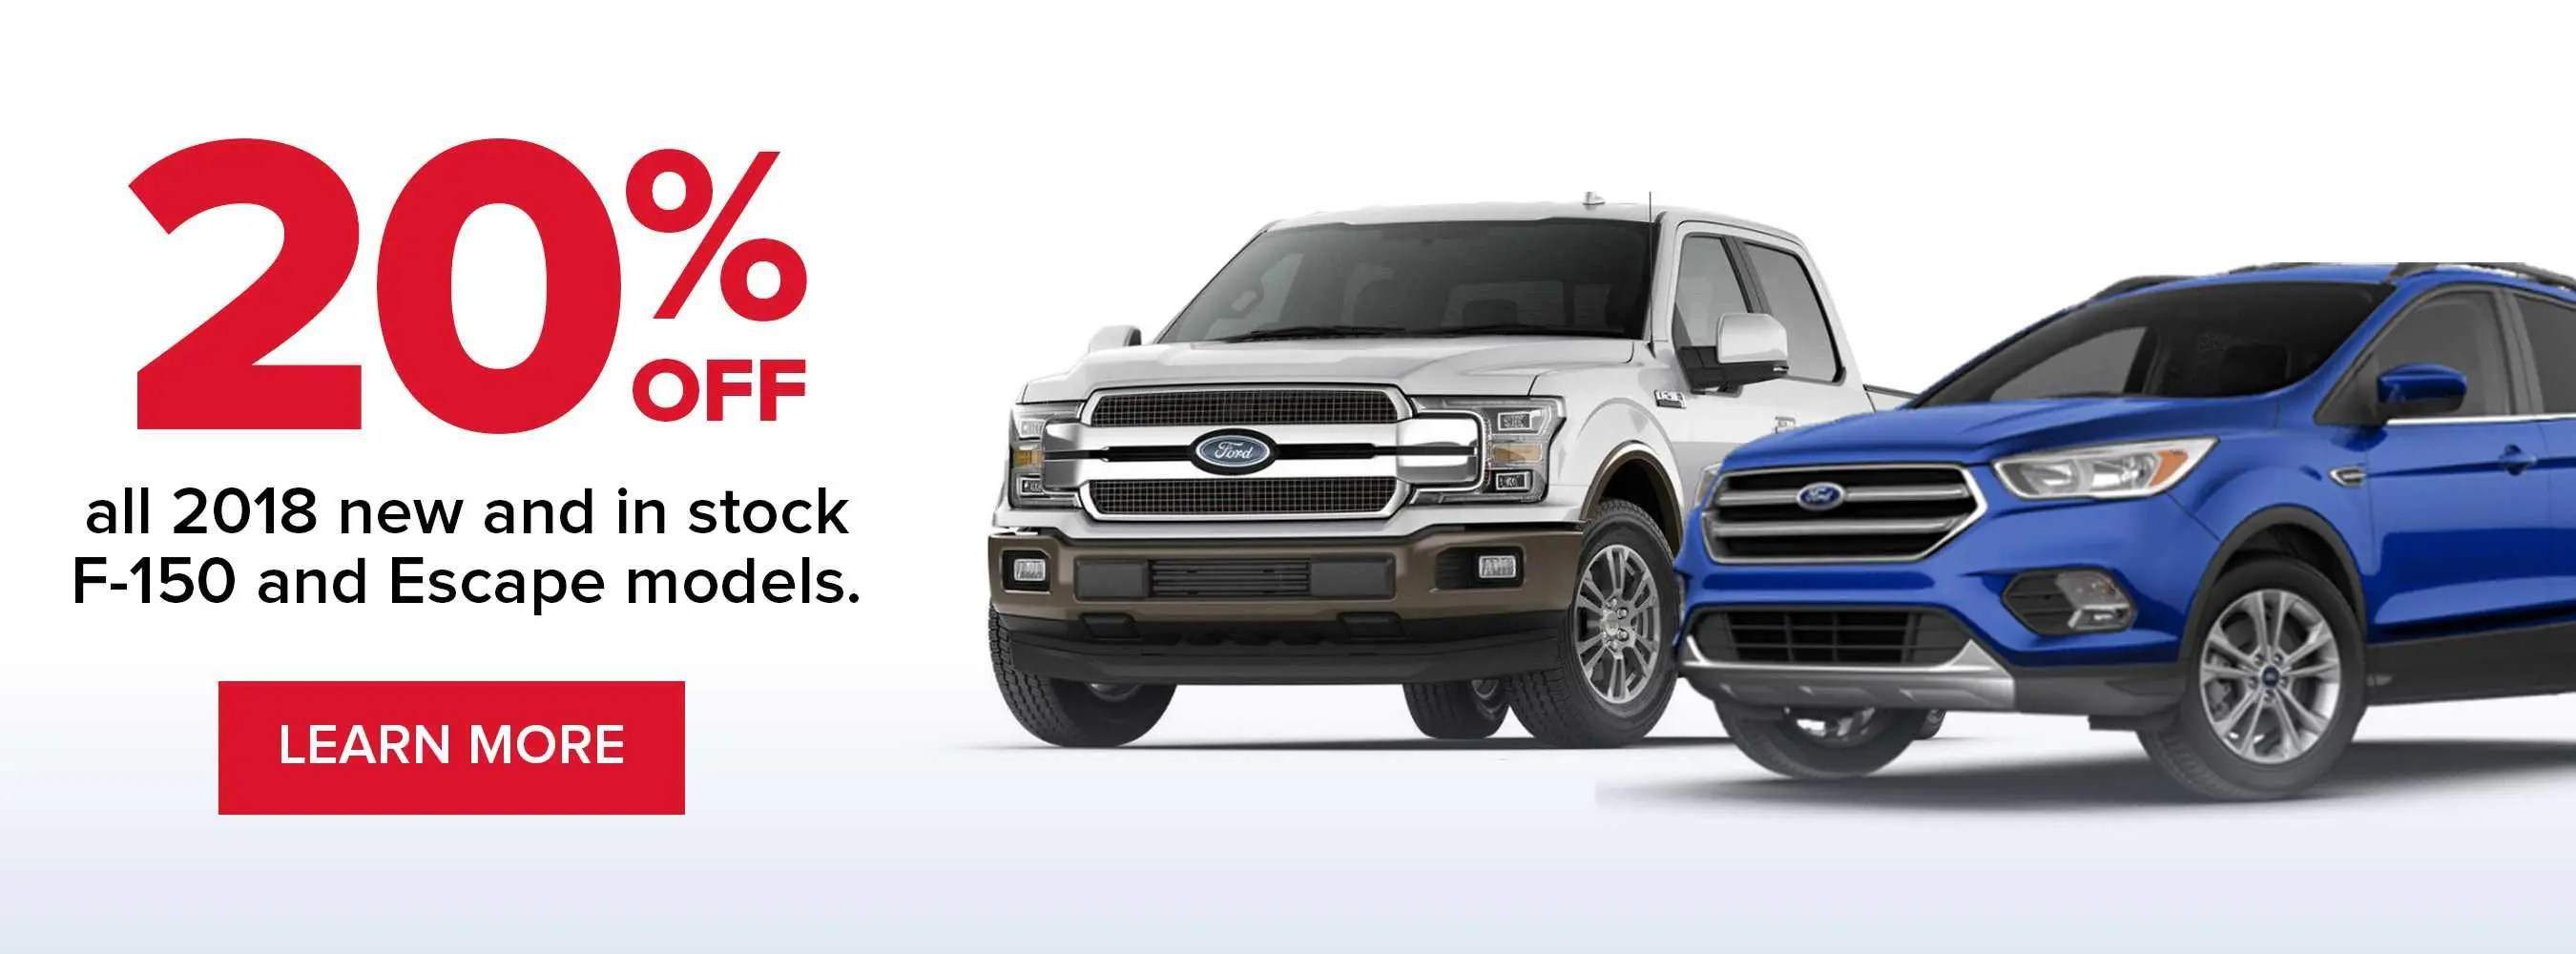 New And Used Cars Glenoak Ford New Used Ford Cars Trucks Suvs Dealership In